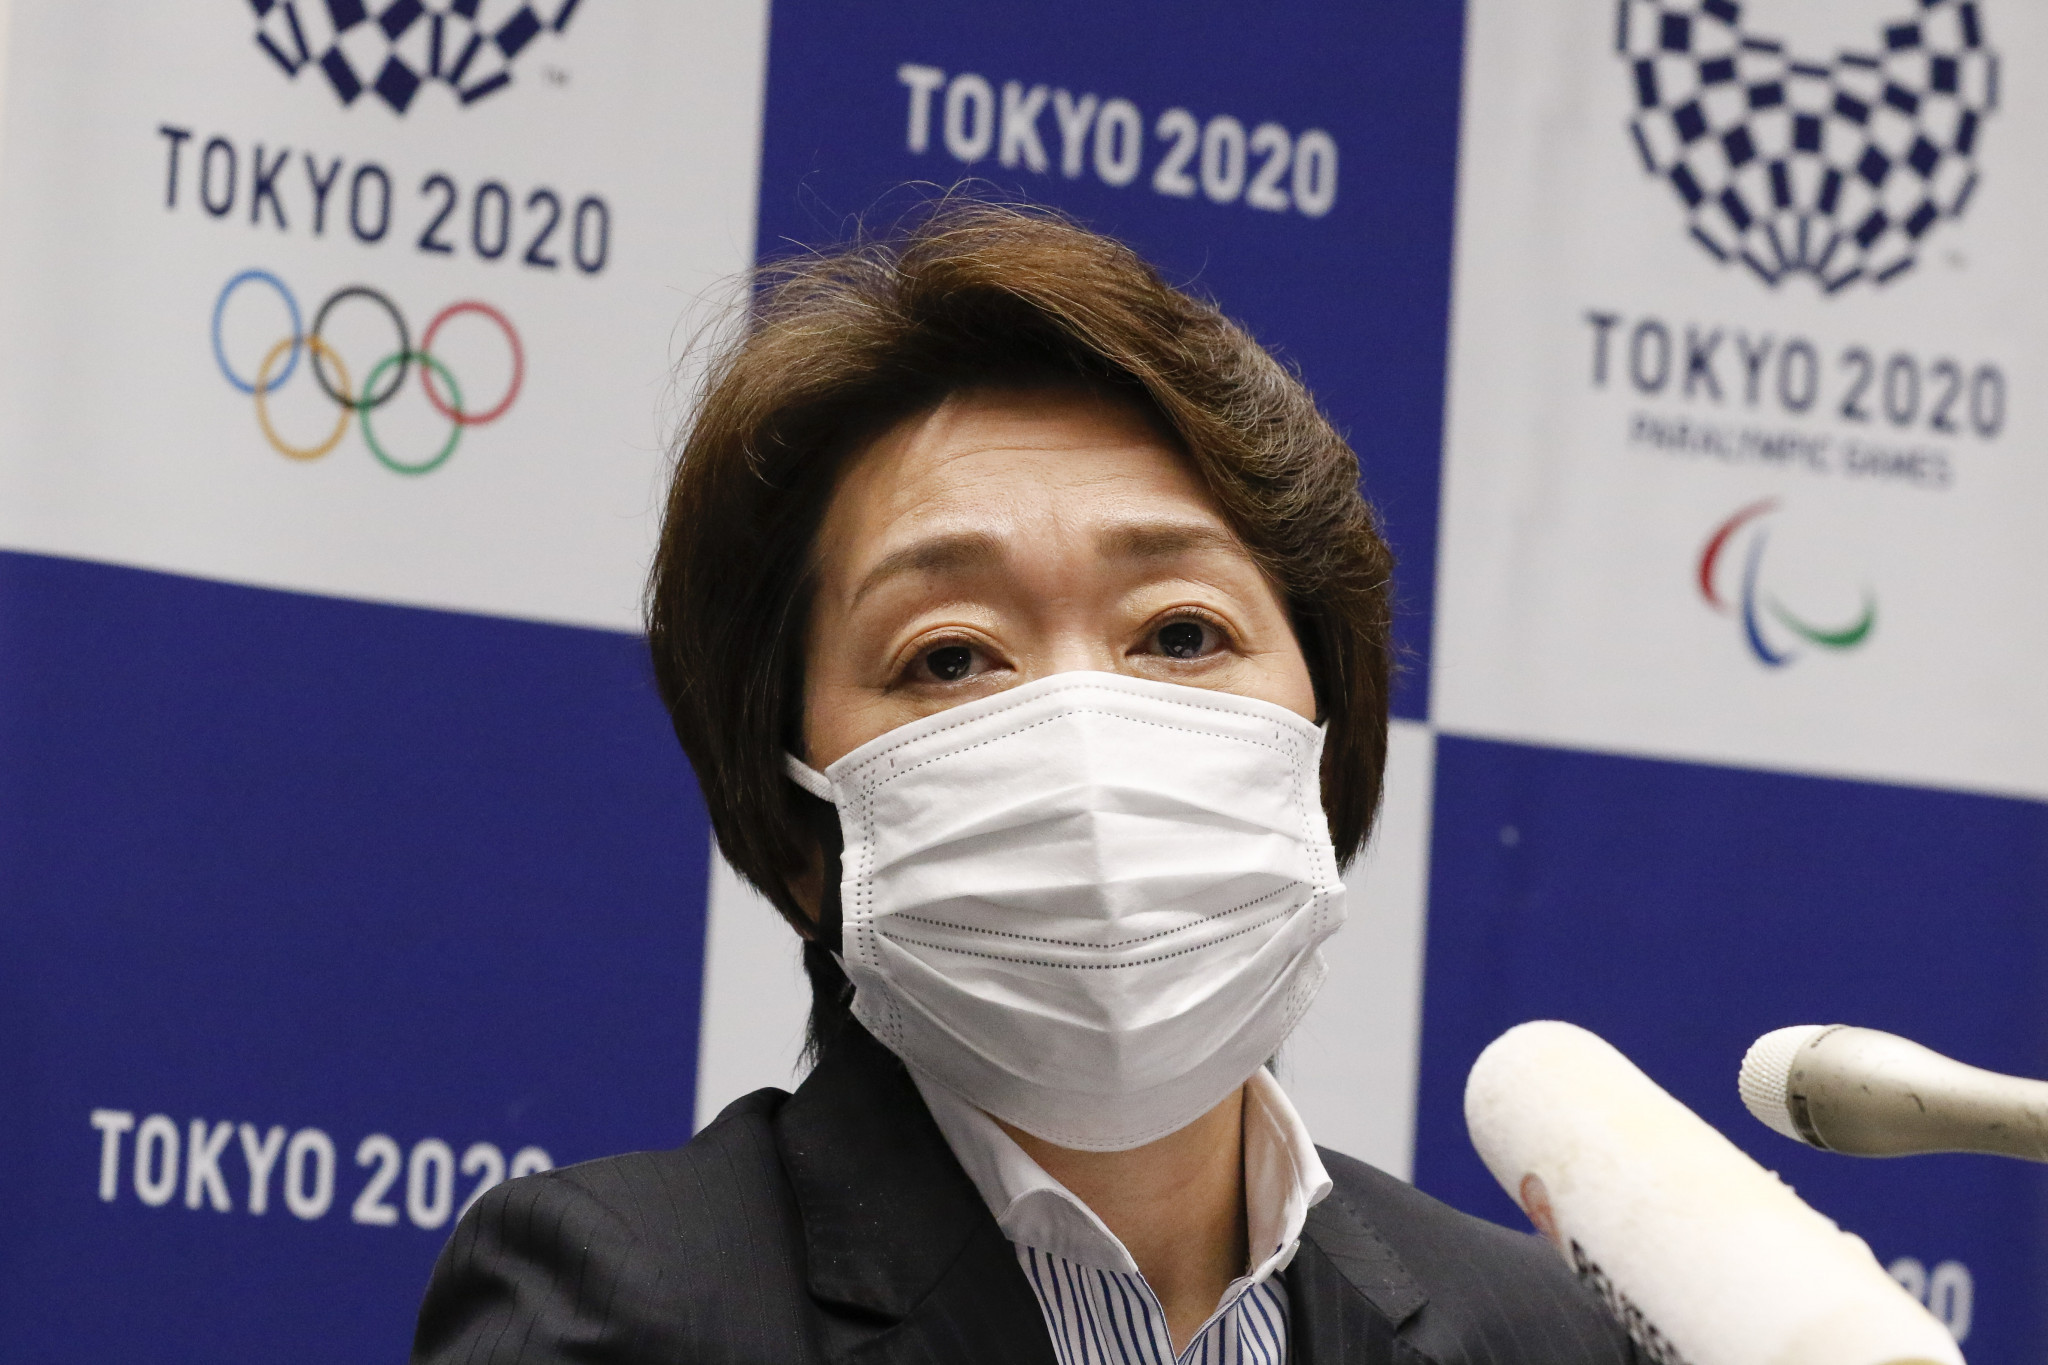 Tokyo 2020 President Seiko Hashimoto has said she wants to help boost support for the Games ©Getty Images